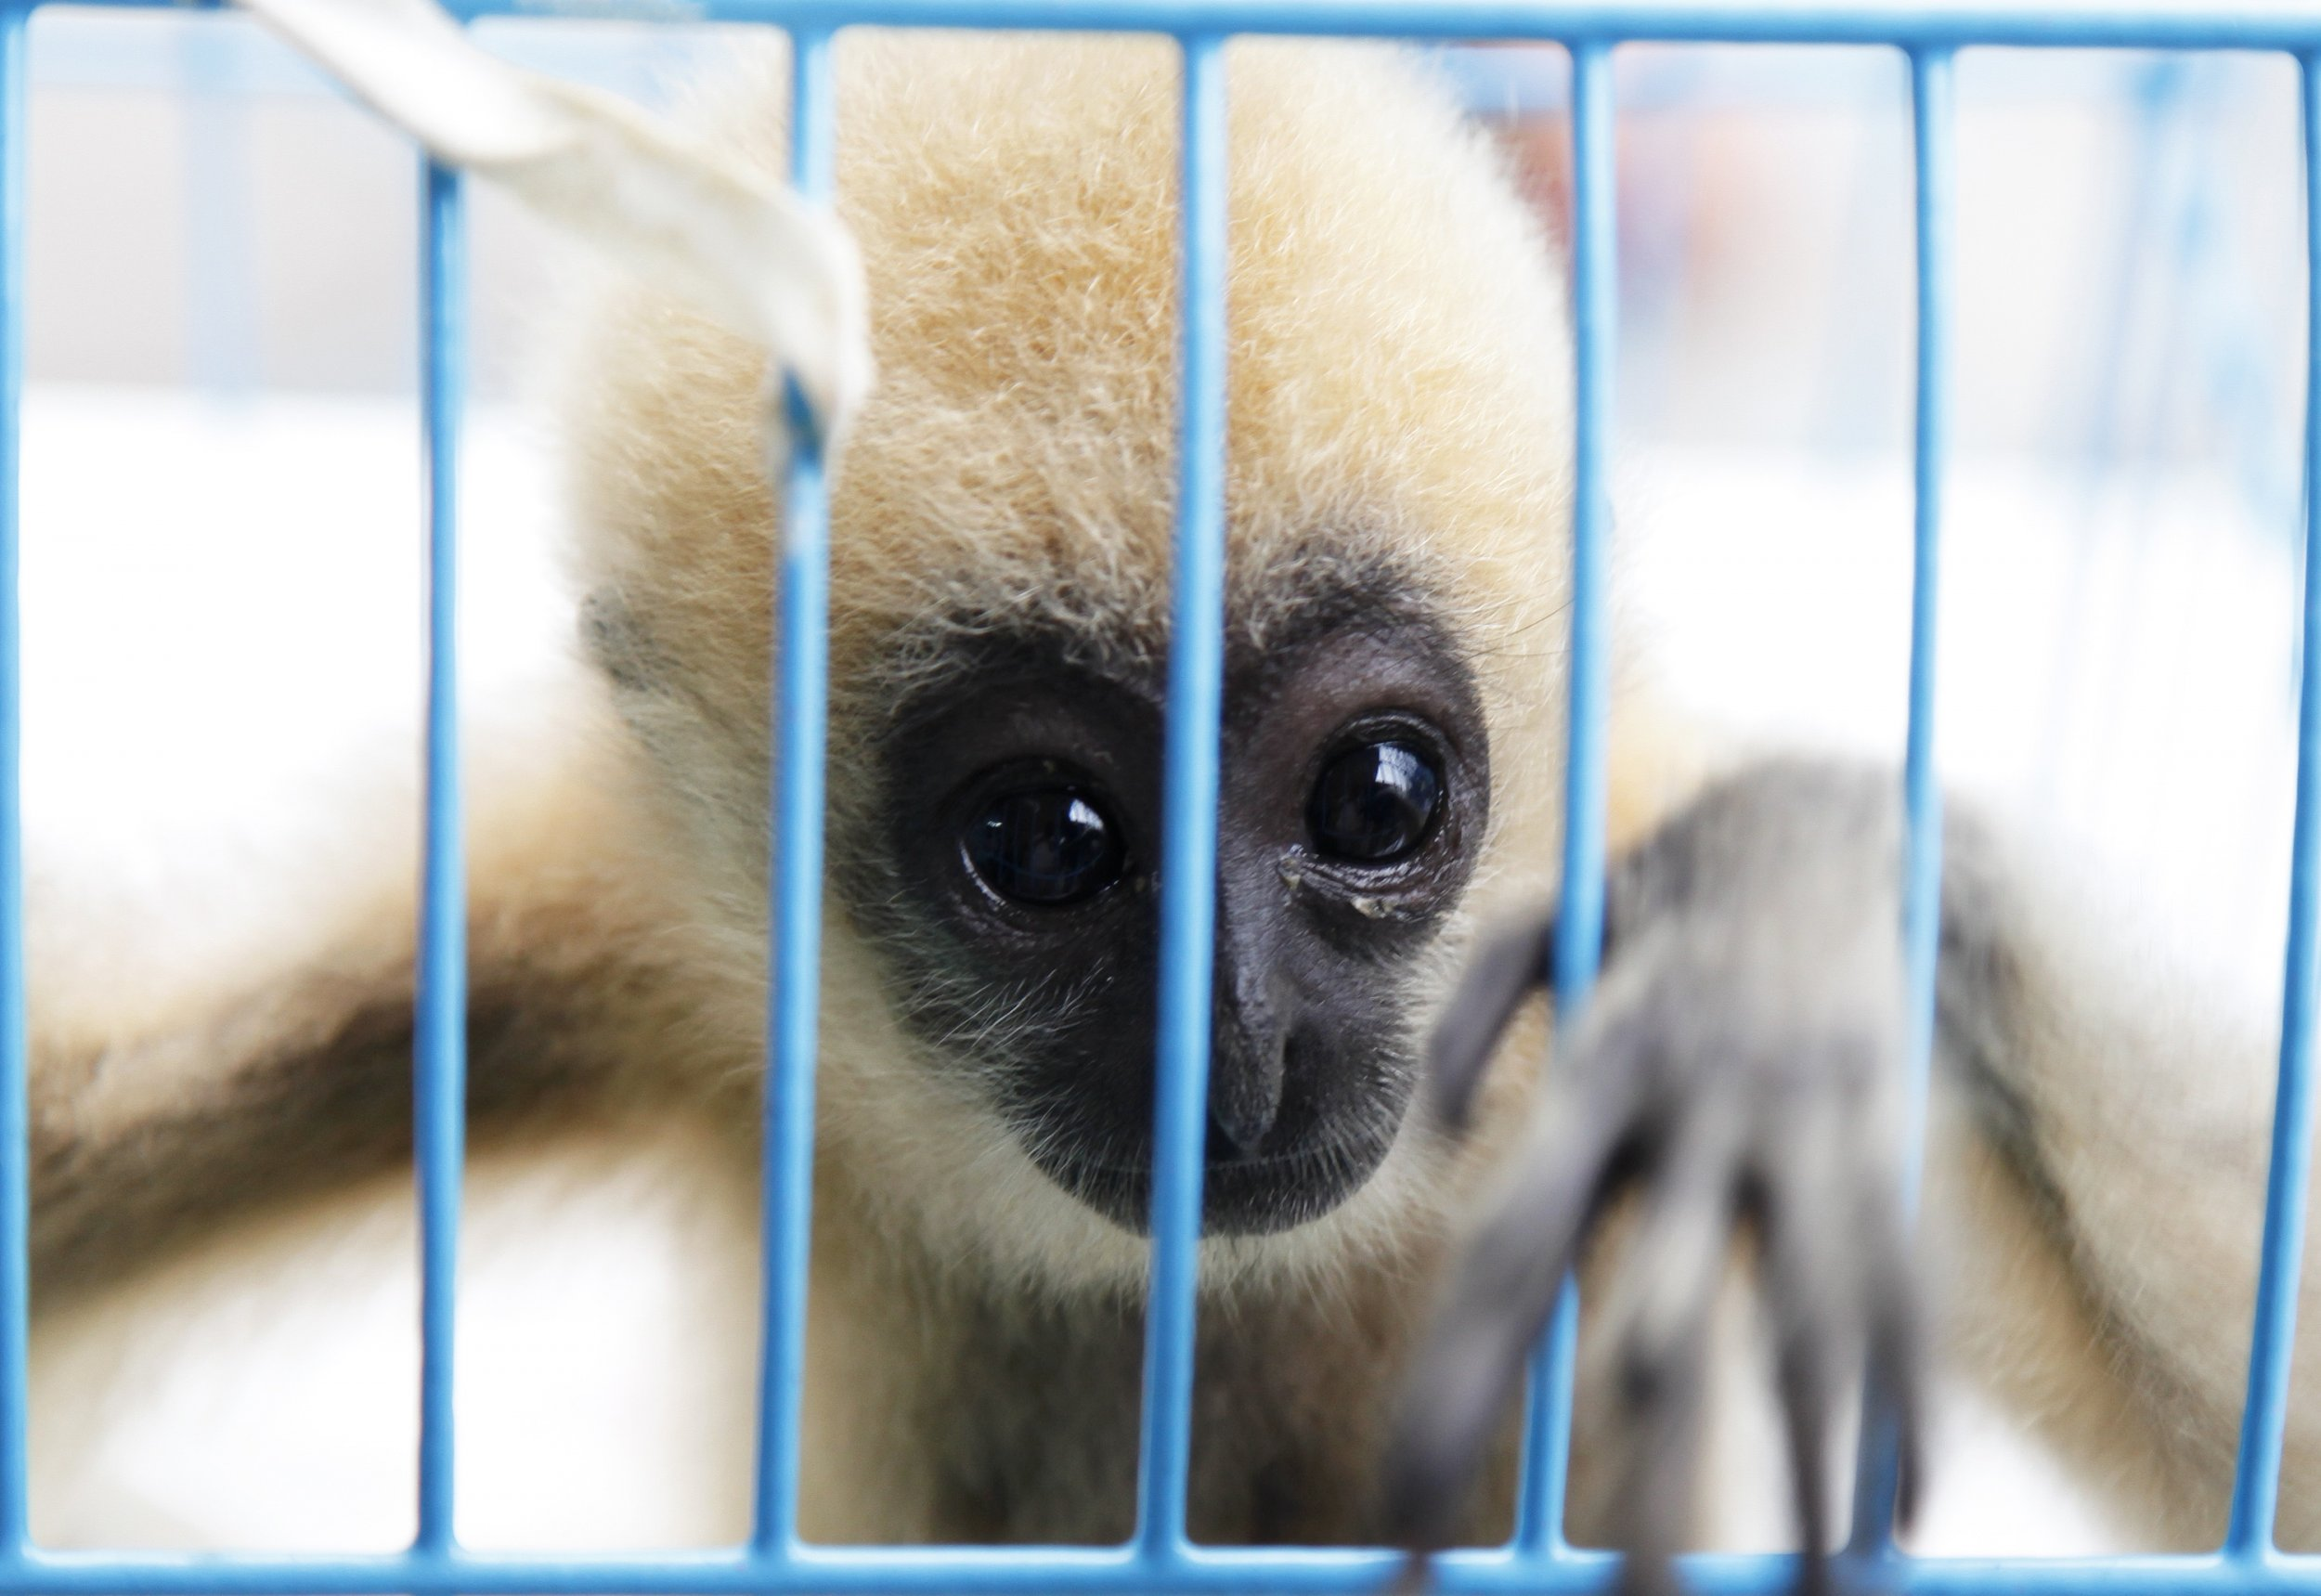 Facebook Being Used to Illegally Traffic Endangered Animals